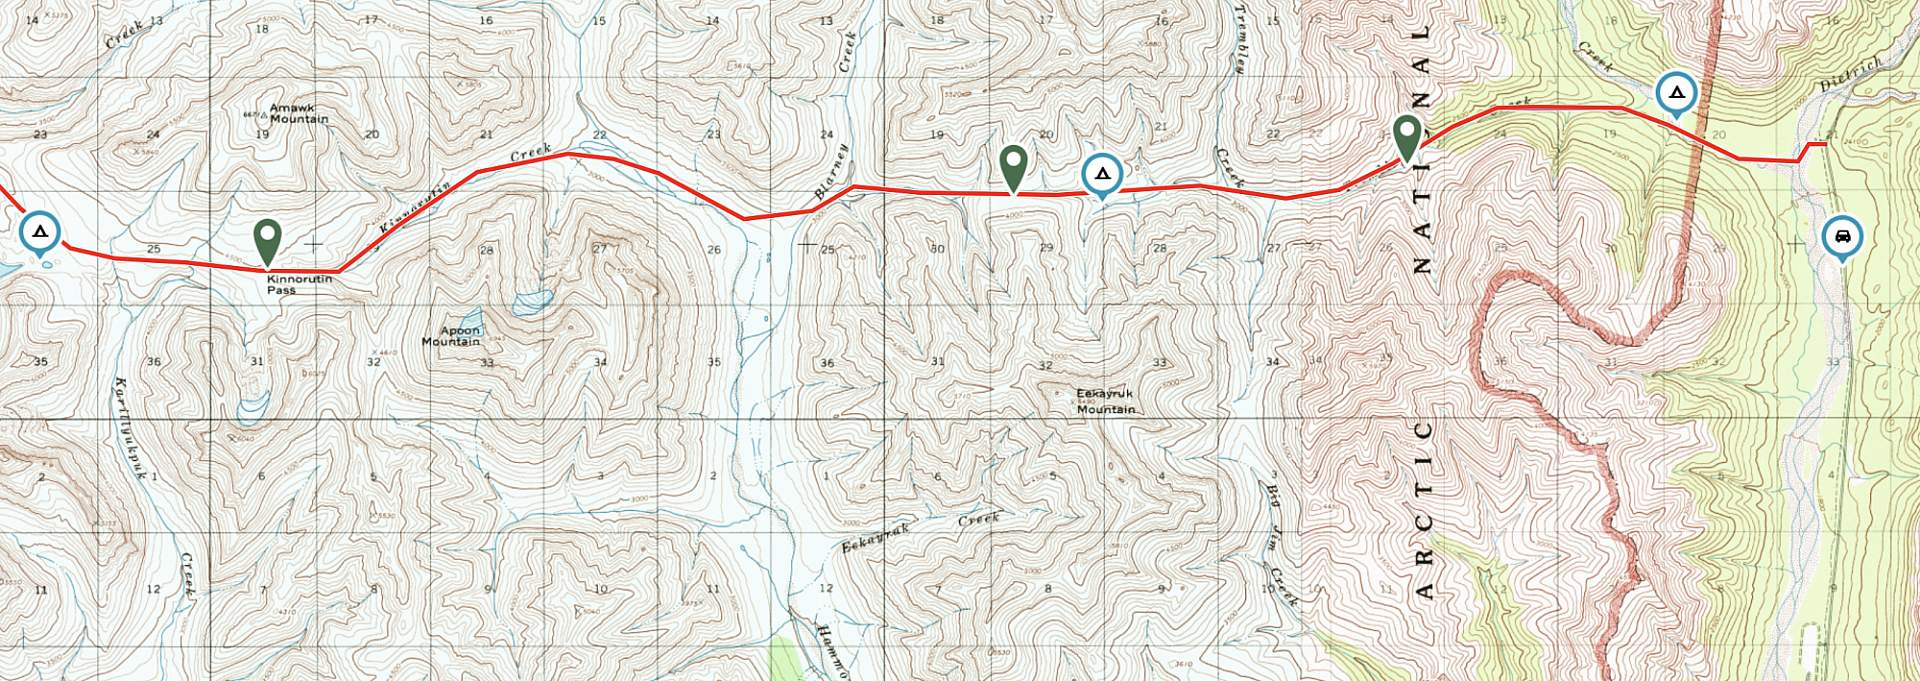 Haley Johnston AC Image Backcountry Navigation Route Planning with Digital Topo